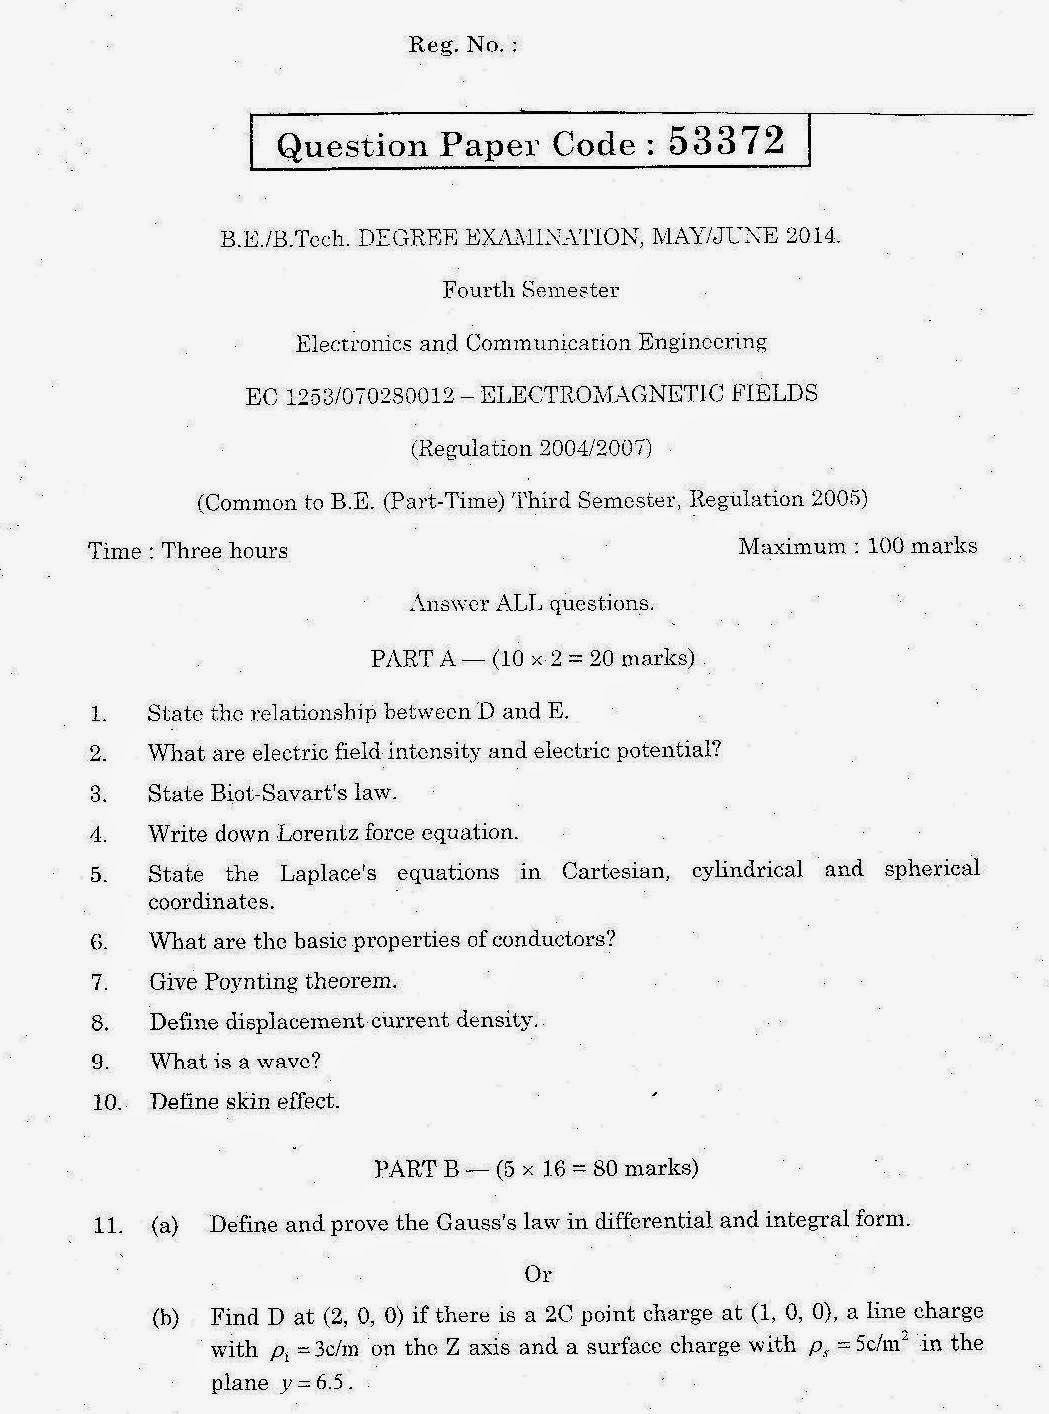 EC1253 Electromagnetic Fields Question Paper May June 2014